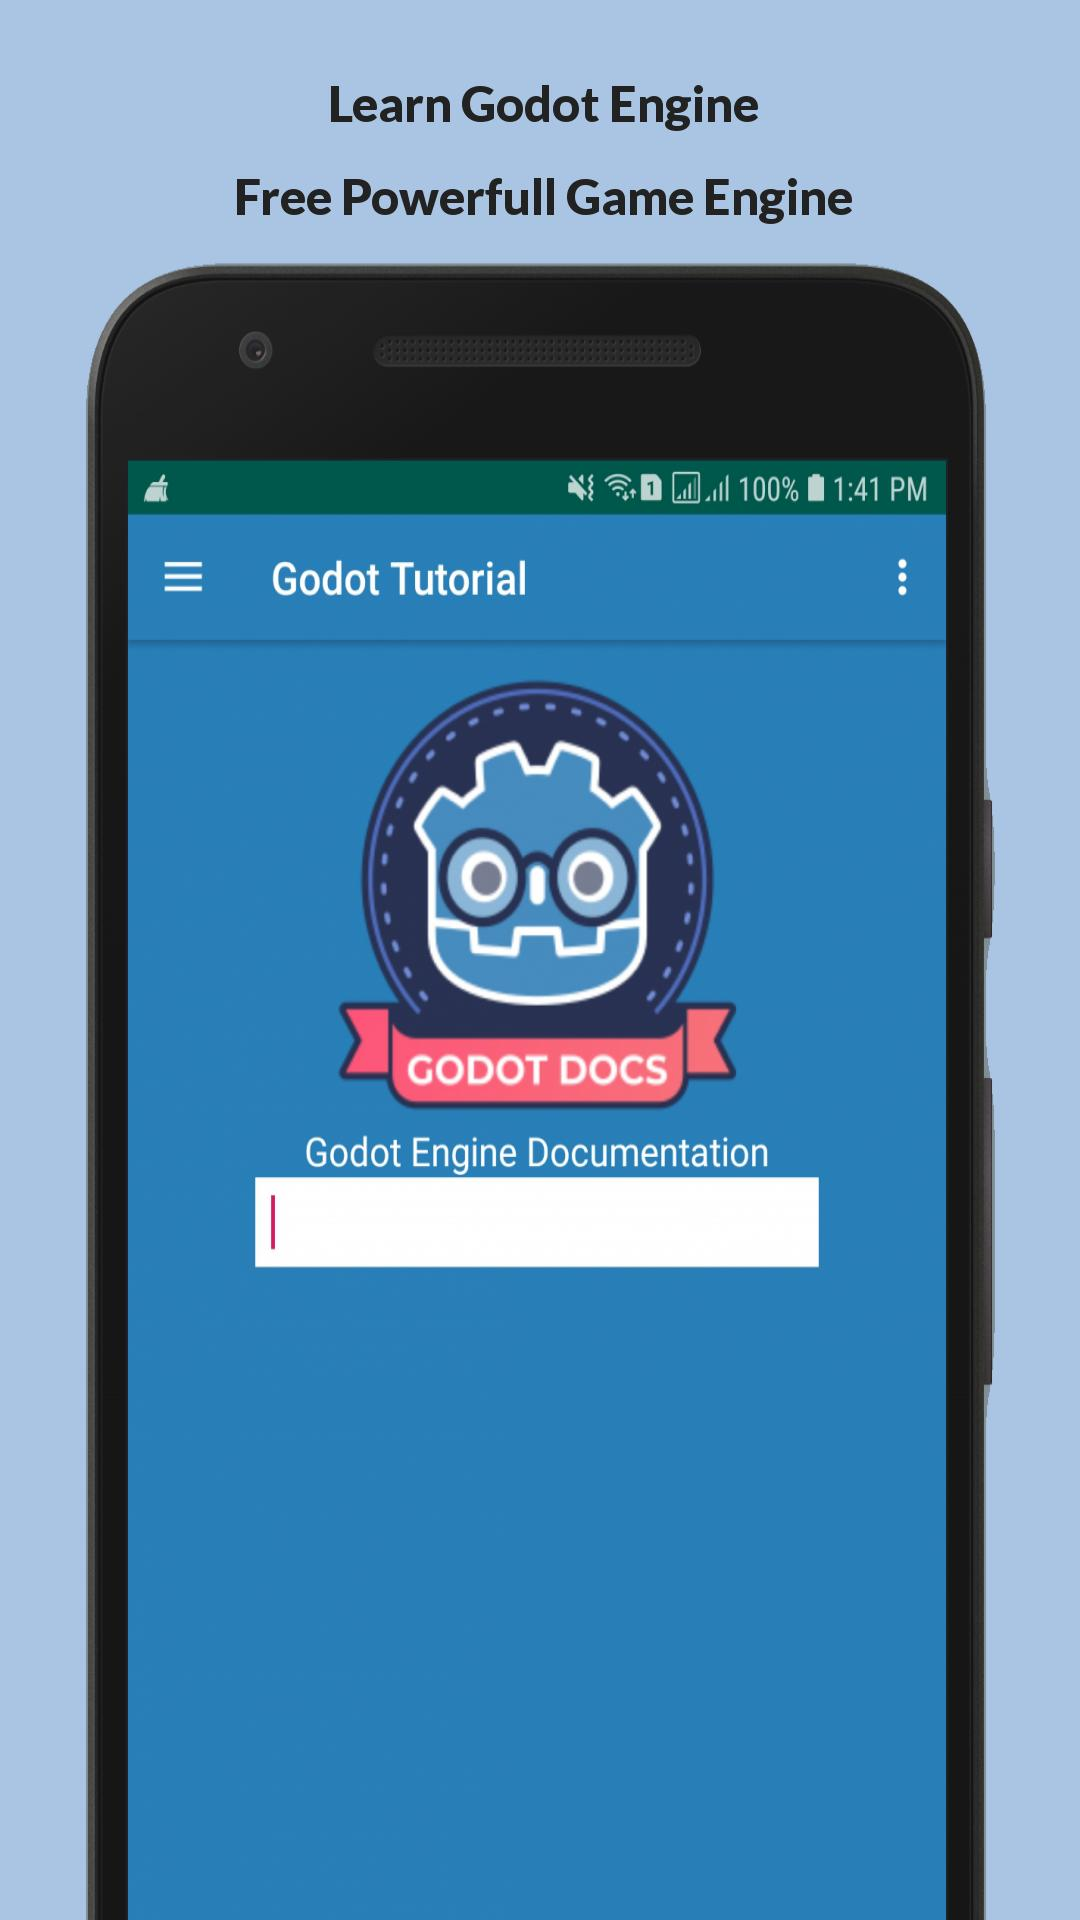 Godot 3 0 Tutorial Documentation for Android - APK Download